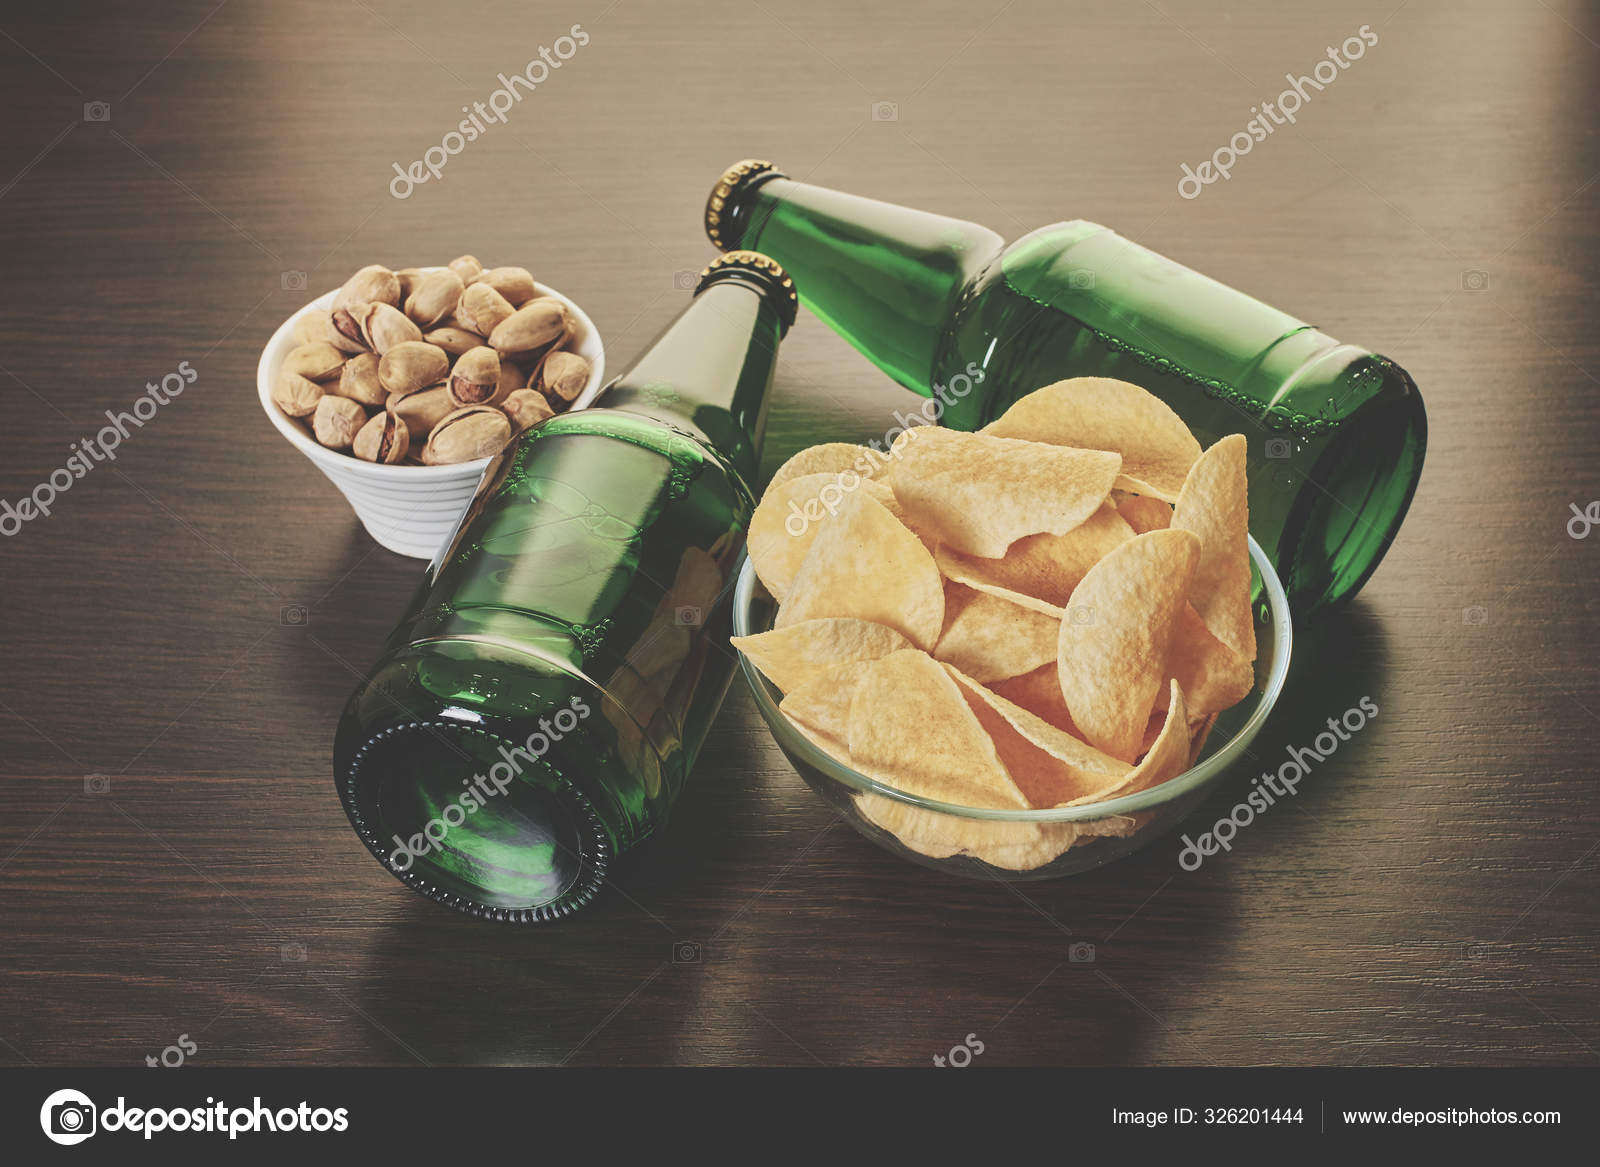 Beer in bottles with snack